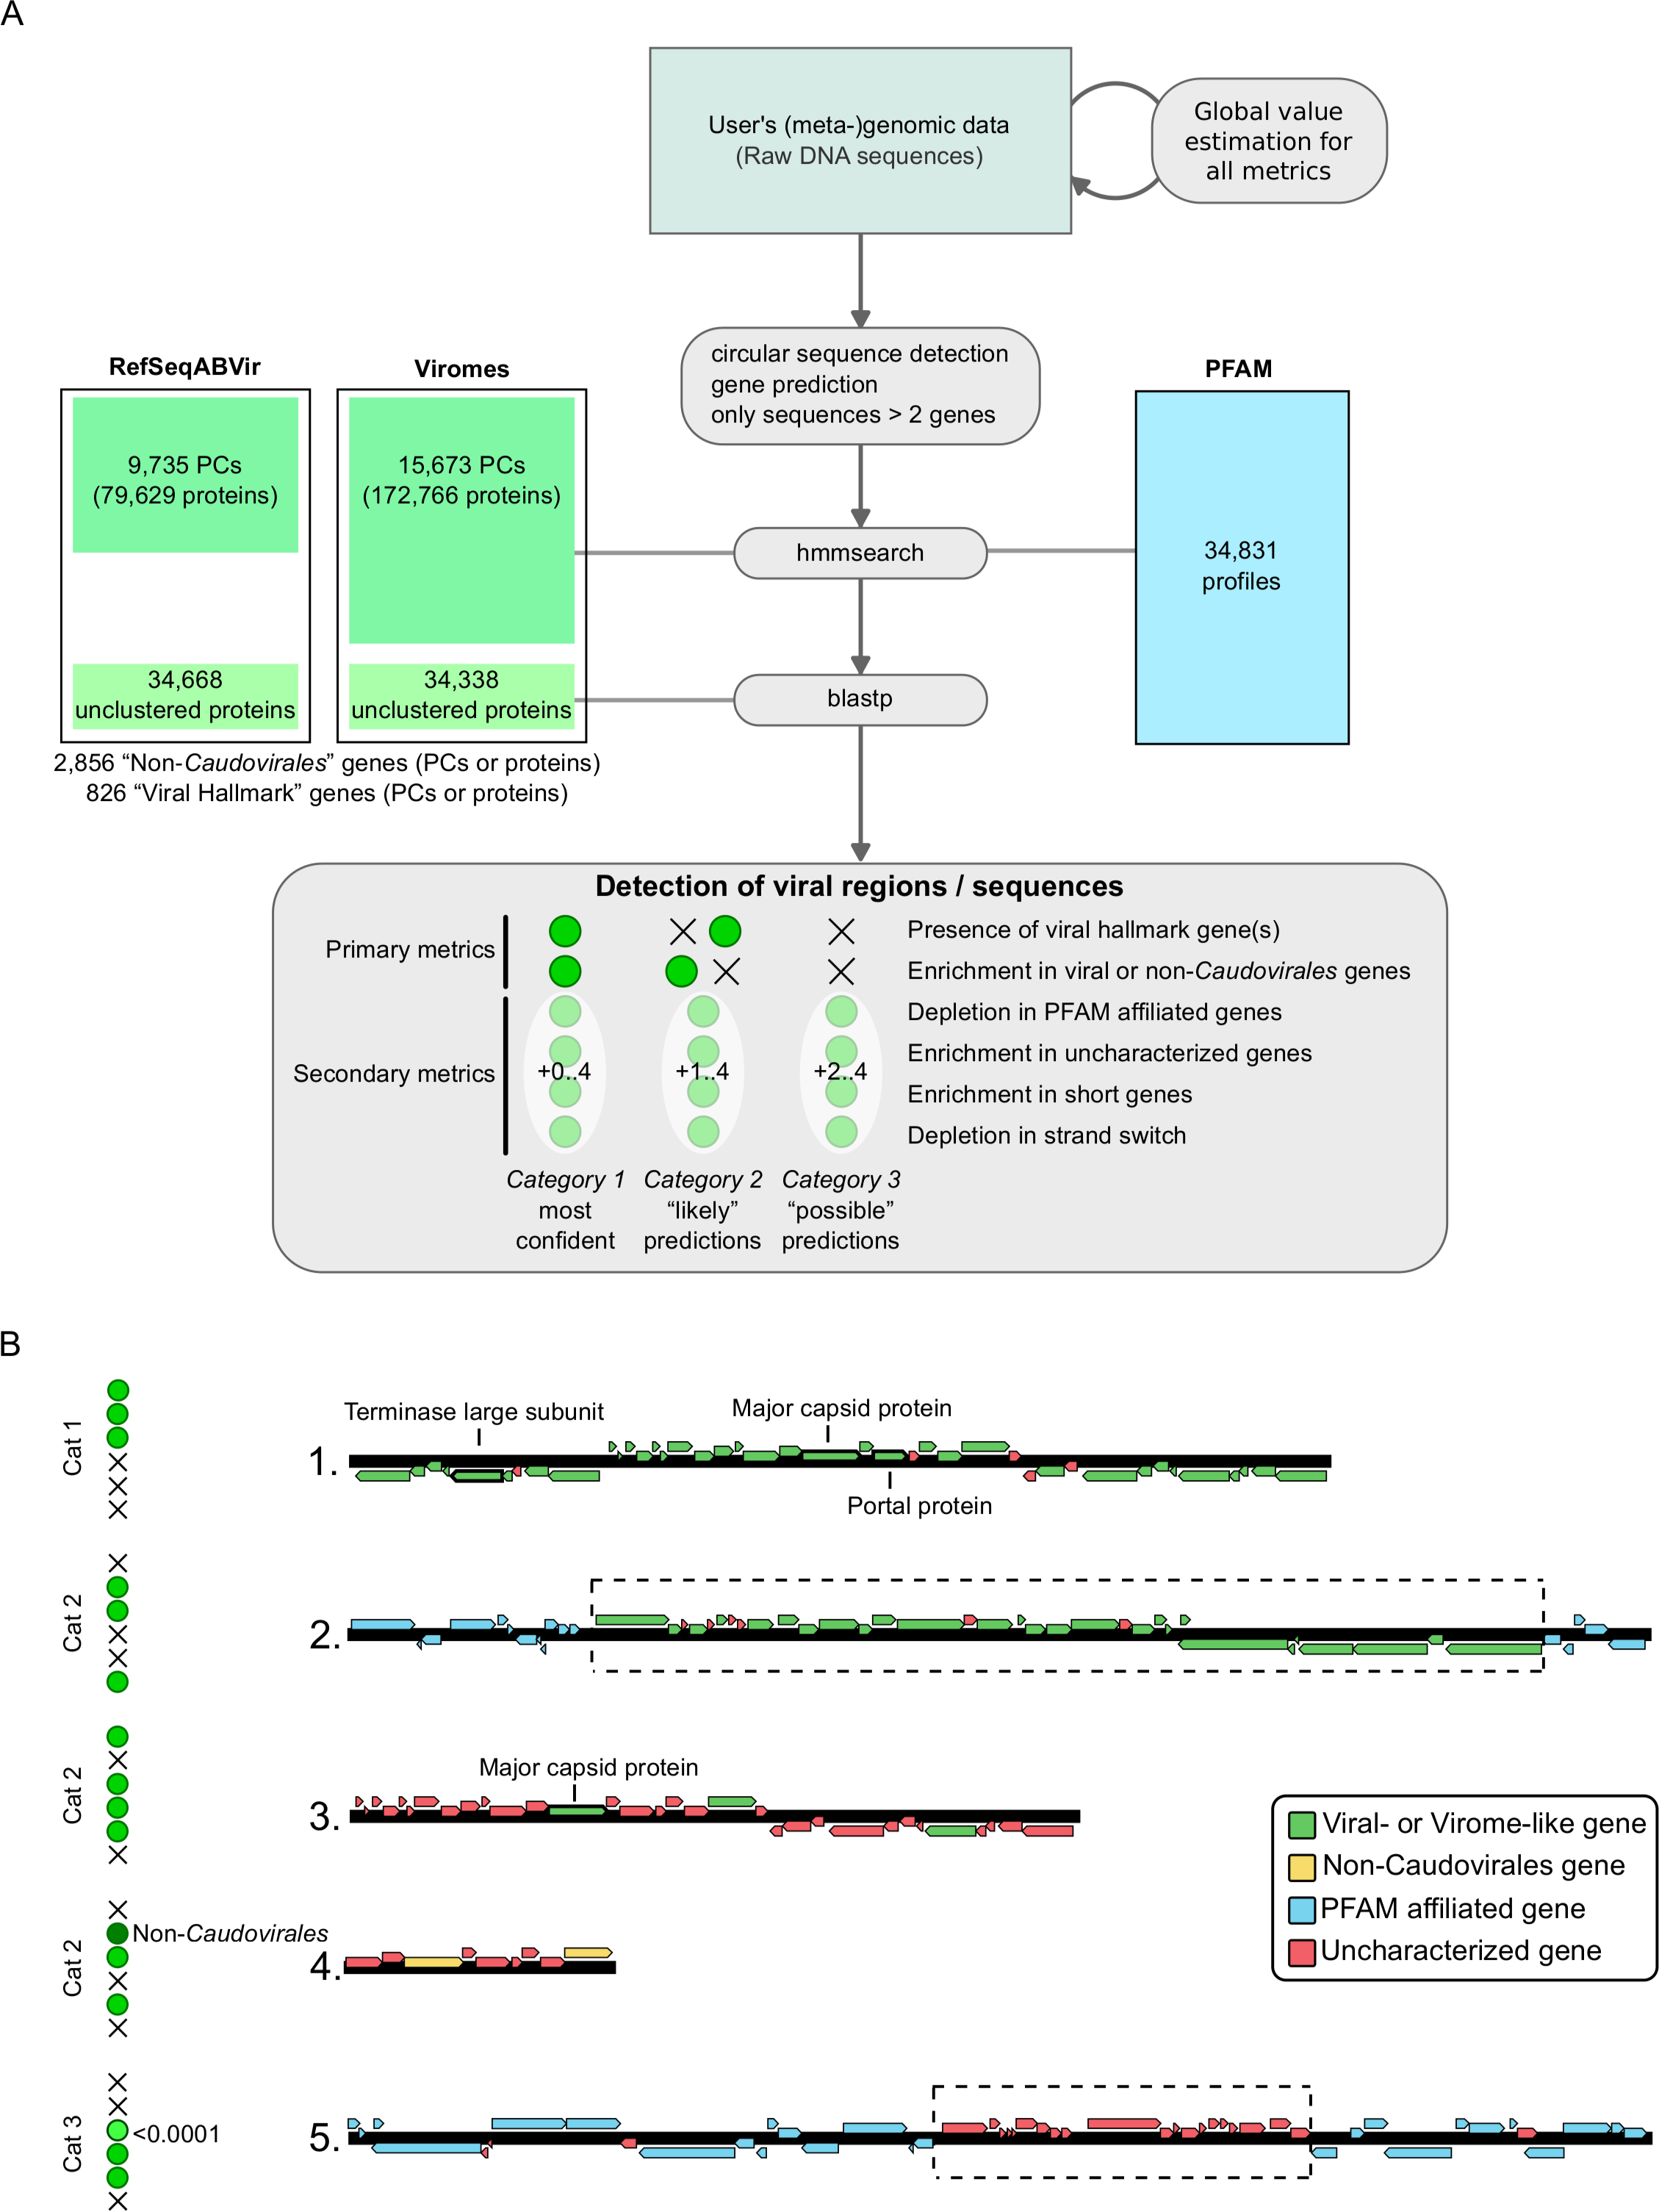 Virsorter Mining Viral Signal From Microbial Genomic Data Peerj Attached Files Image 3 Jpg File Size 107 5 Kb Views Download Full